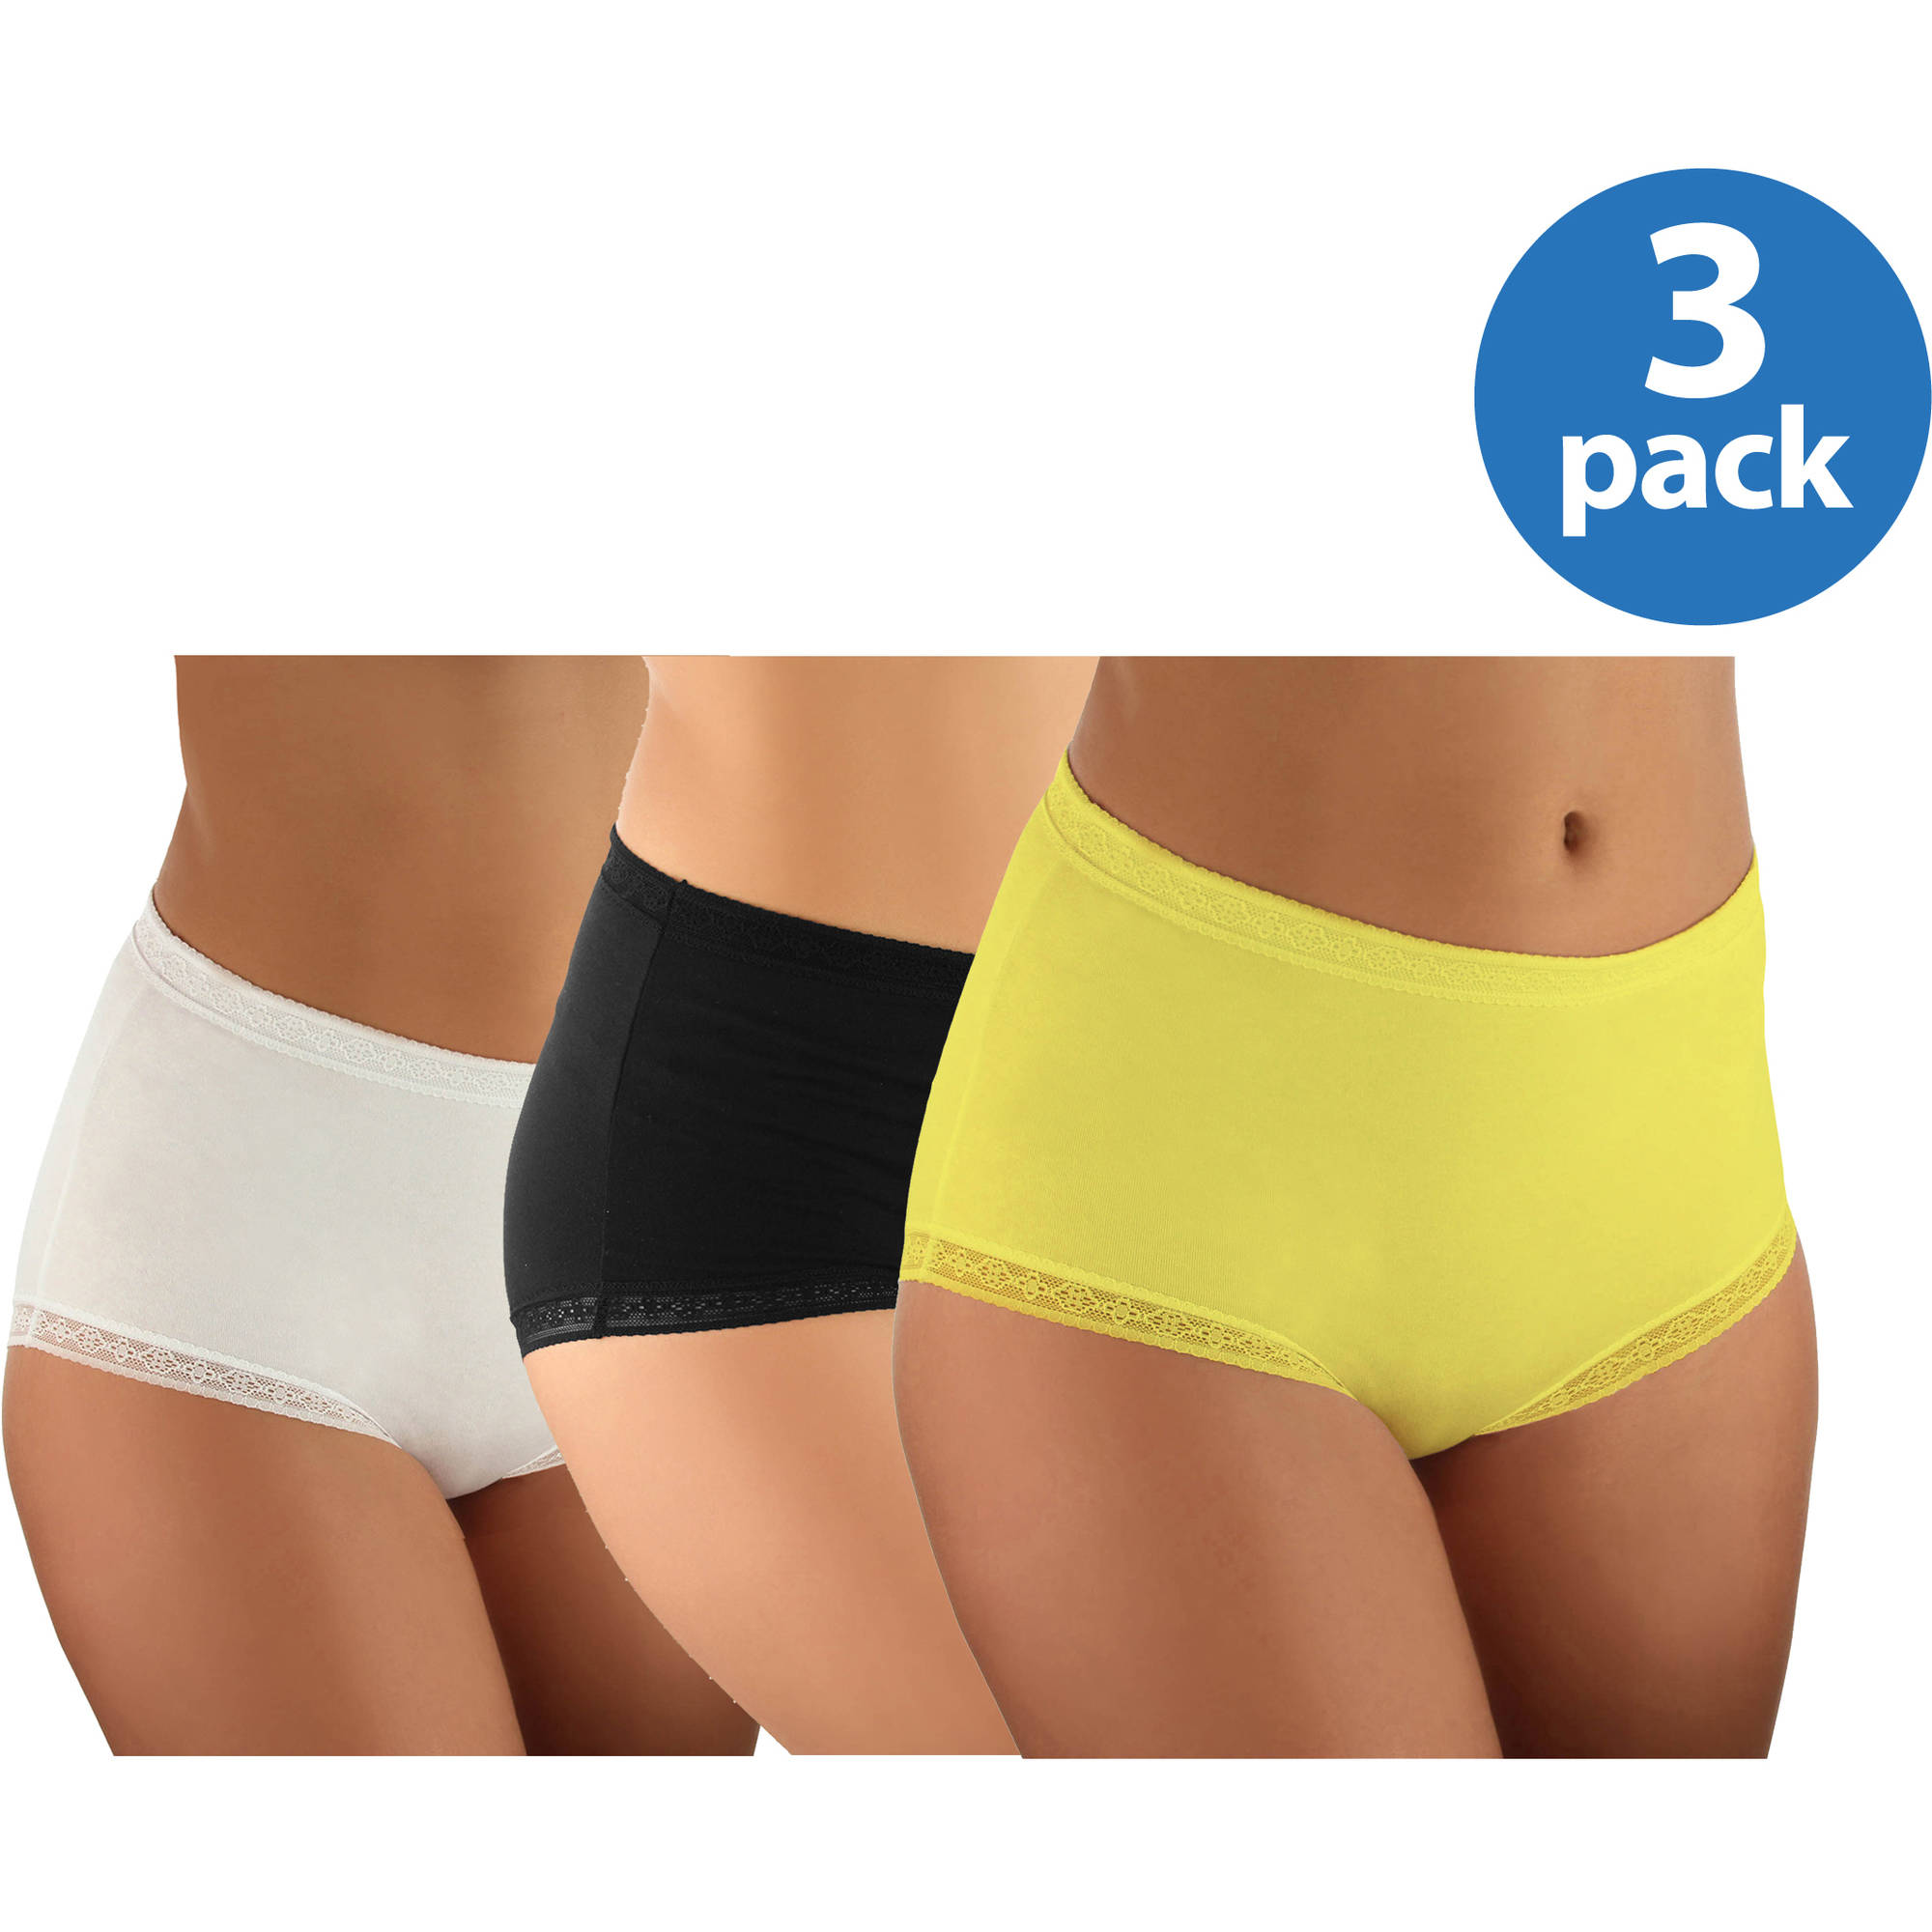 Women's Cotton w/Lace Brief, 3-Pack